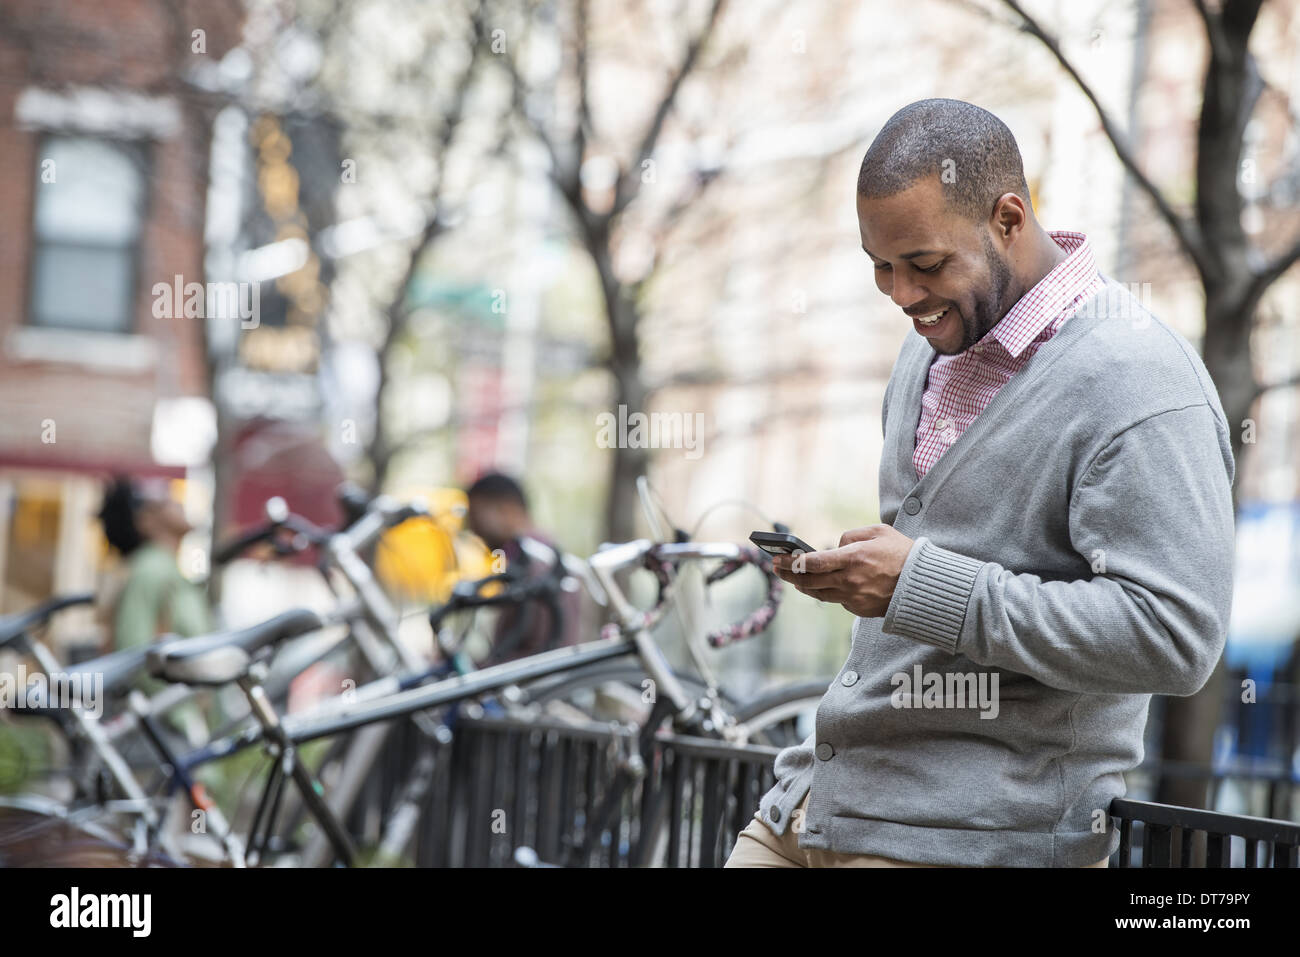 A man using his phone. A group of people in the background. Cycle rack. - Stock Image